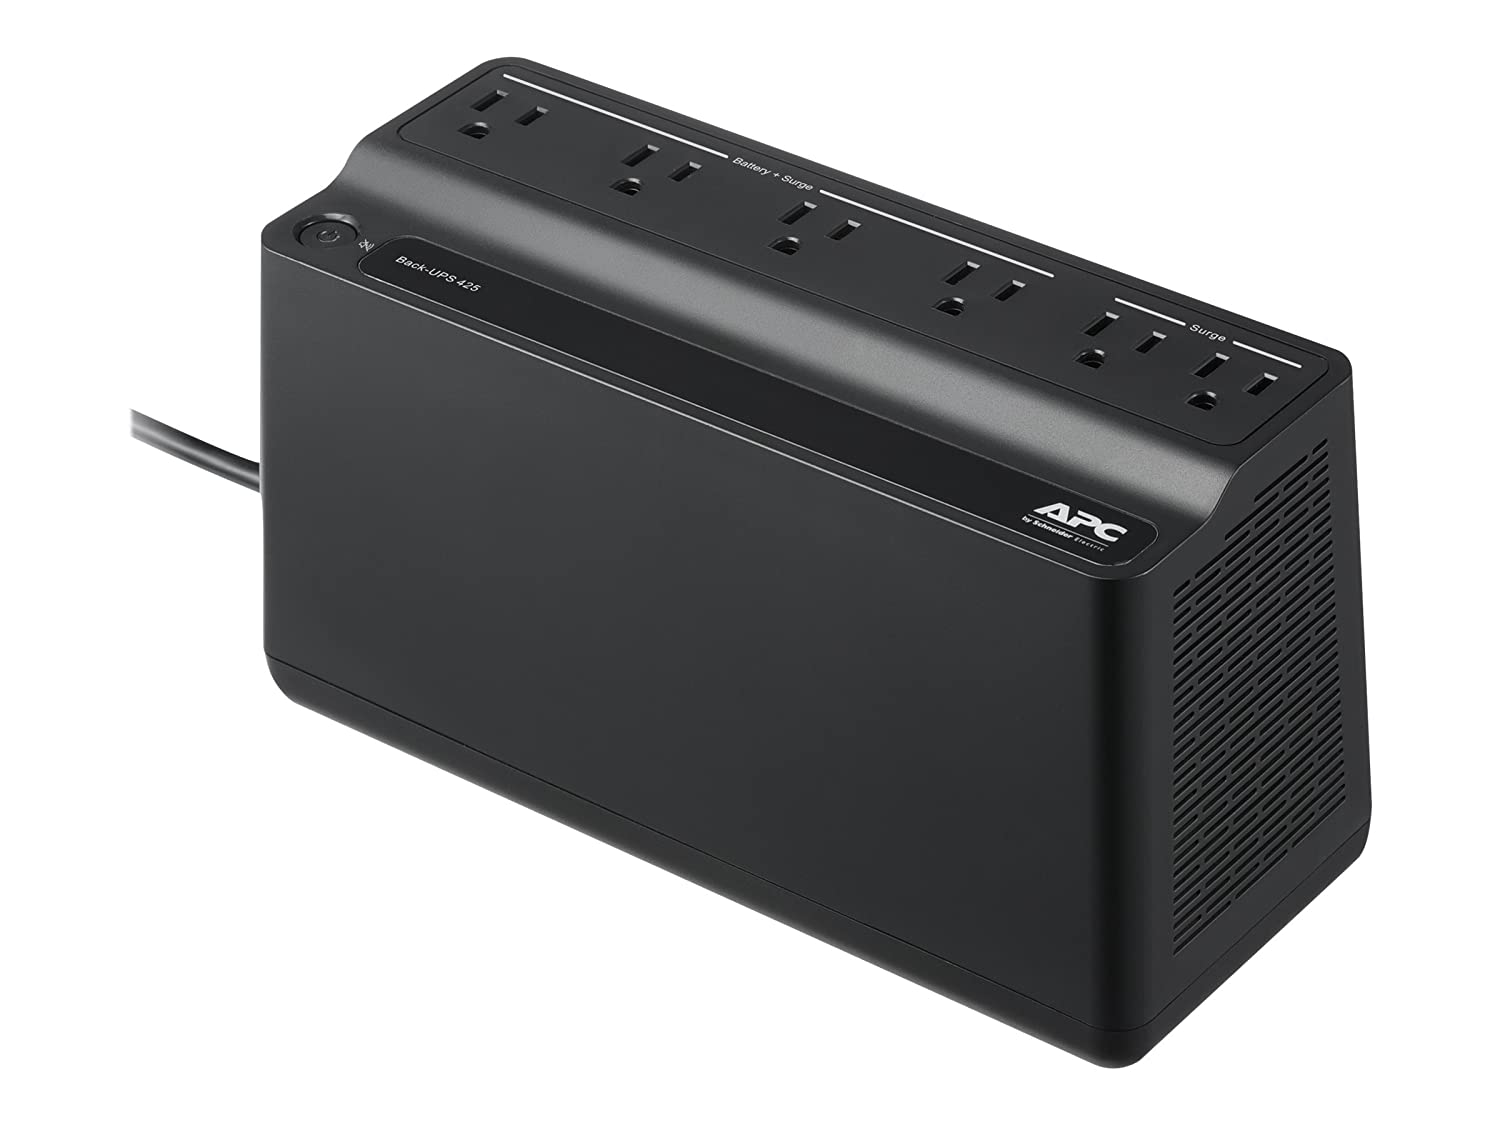 APC UPS Battery Backup & Surge Protector, 425VA, APC Back-UPS (BE425M)